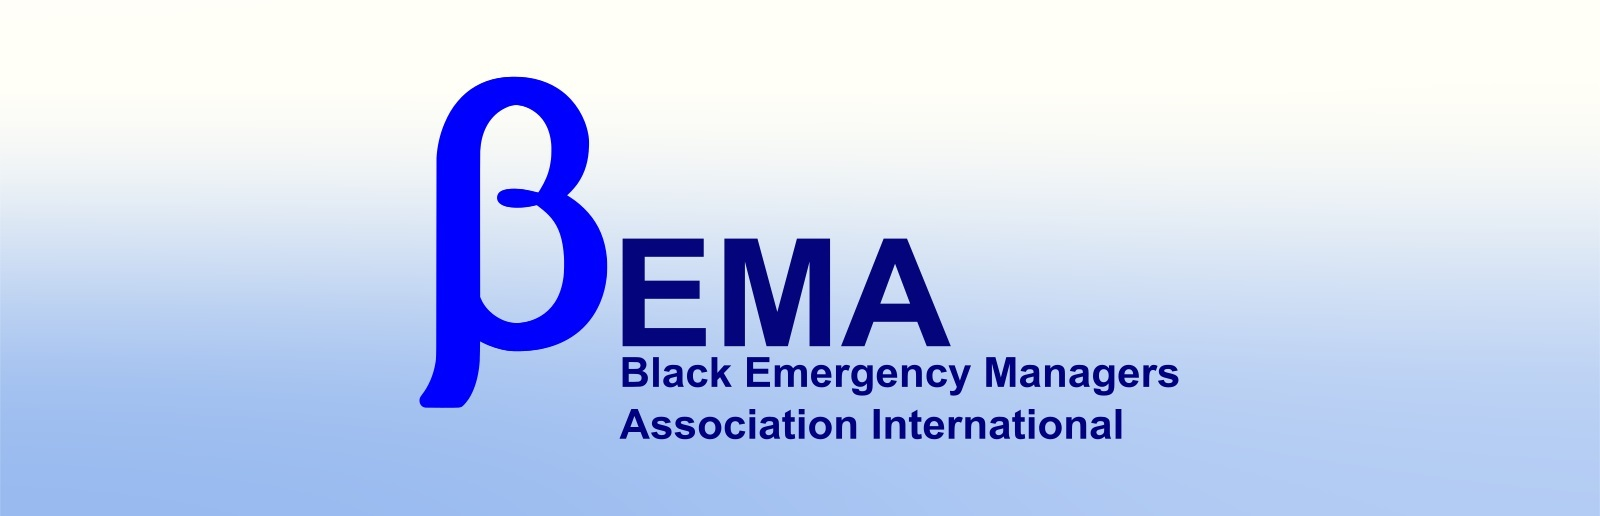 Black Emergency Managers Association International - Online Store Store